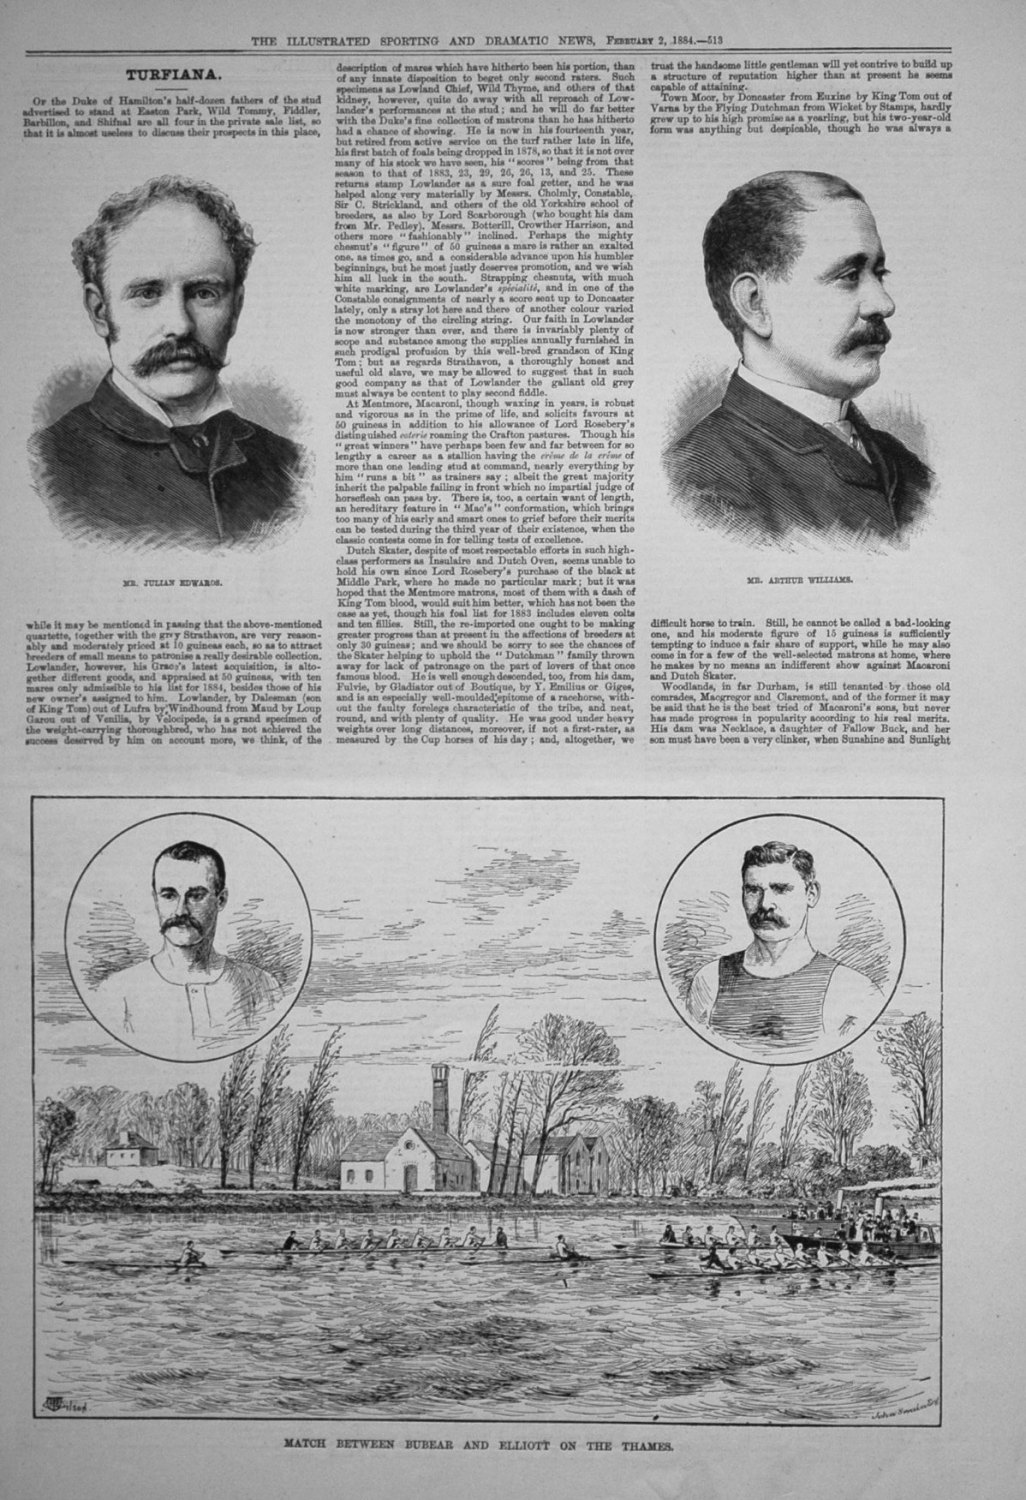 Match between Bubear and Elliott on the Thames. 1884